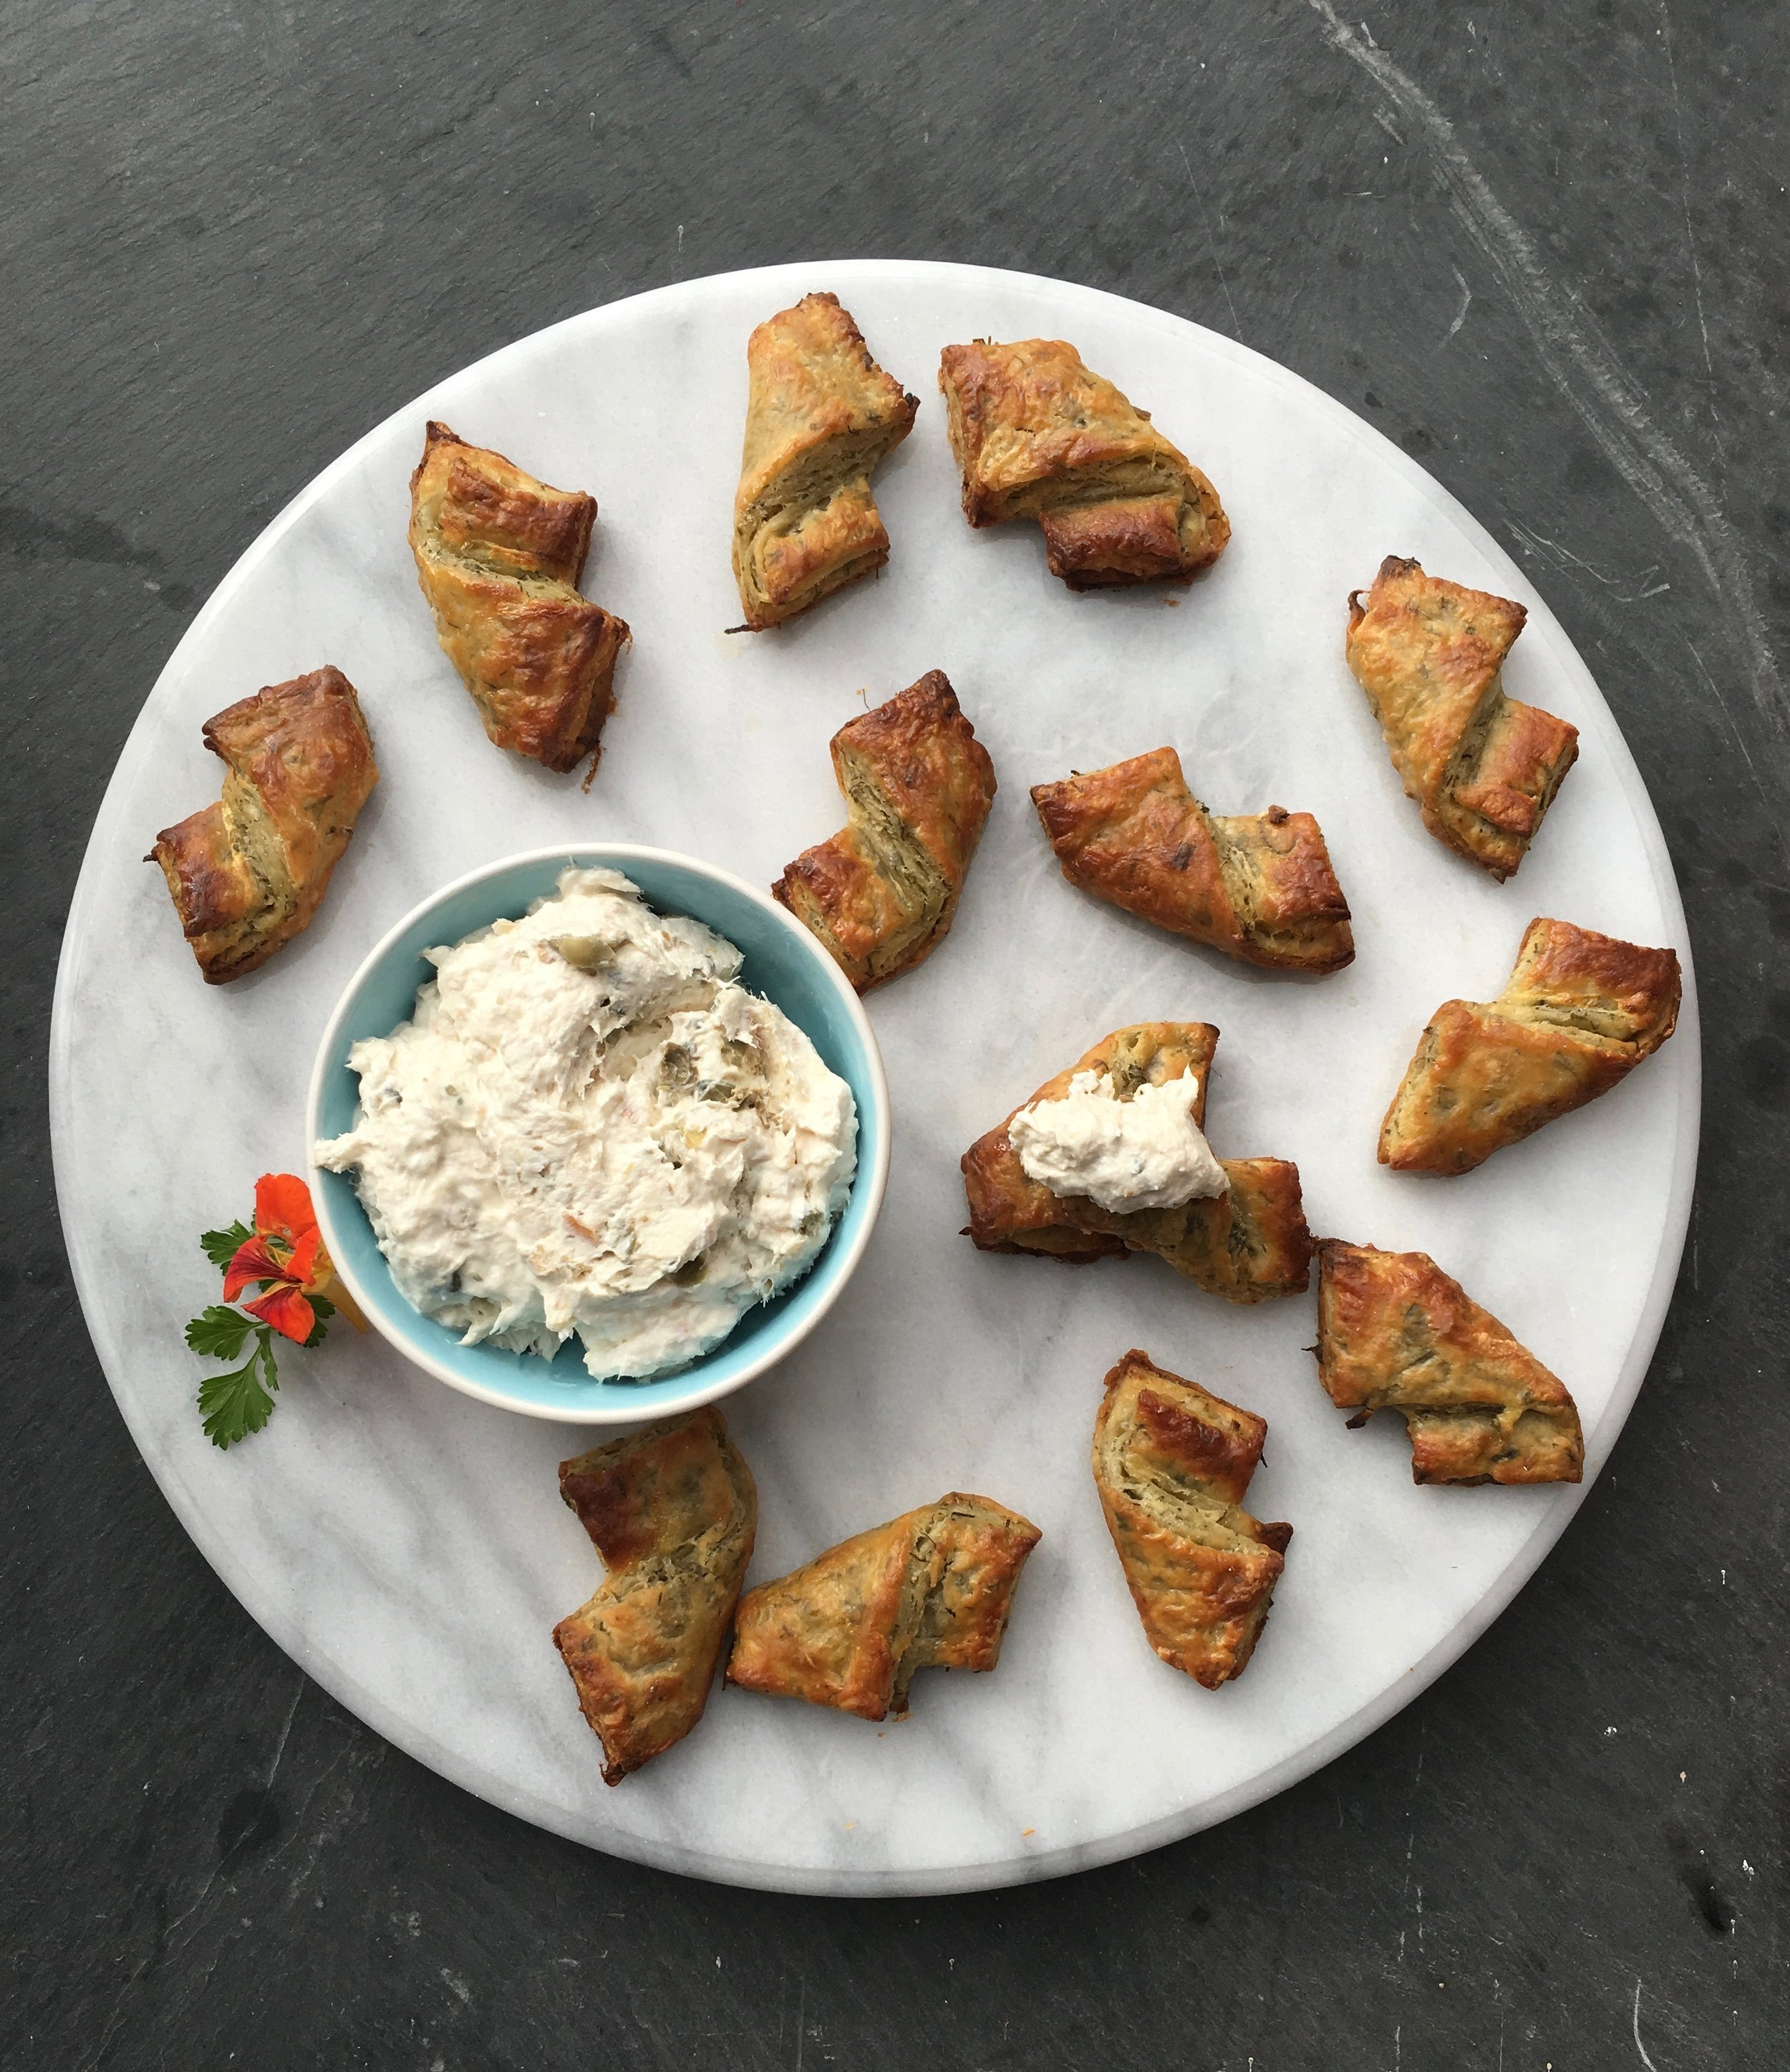 Horseradish dill pastries with smoked trout dip